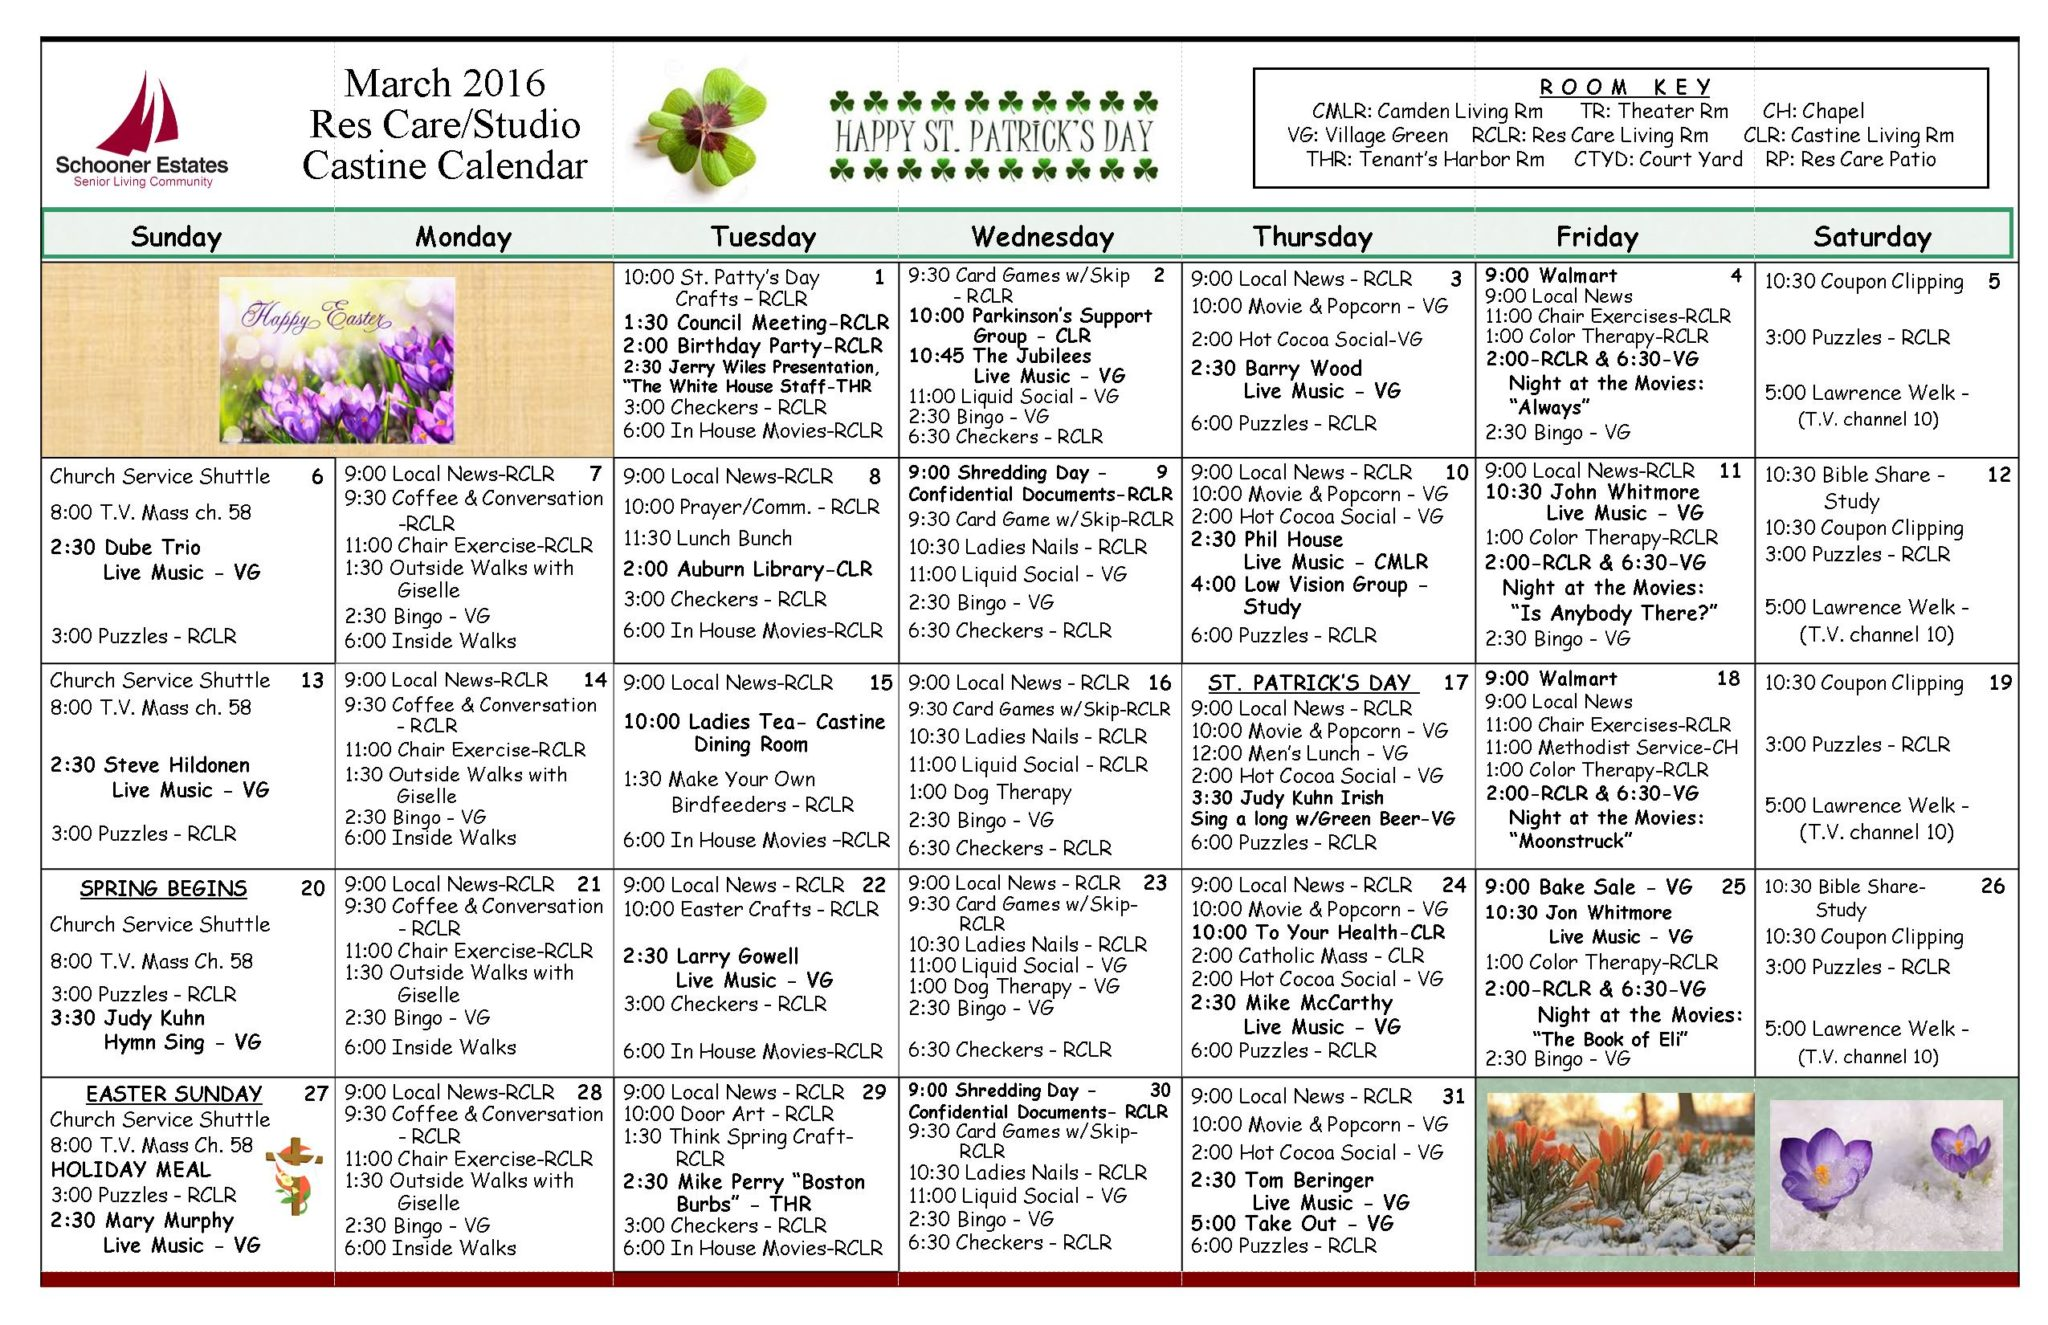 March 2016 Assisted Living and Residential Care Activity Calendar